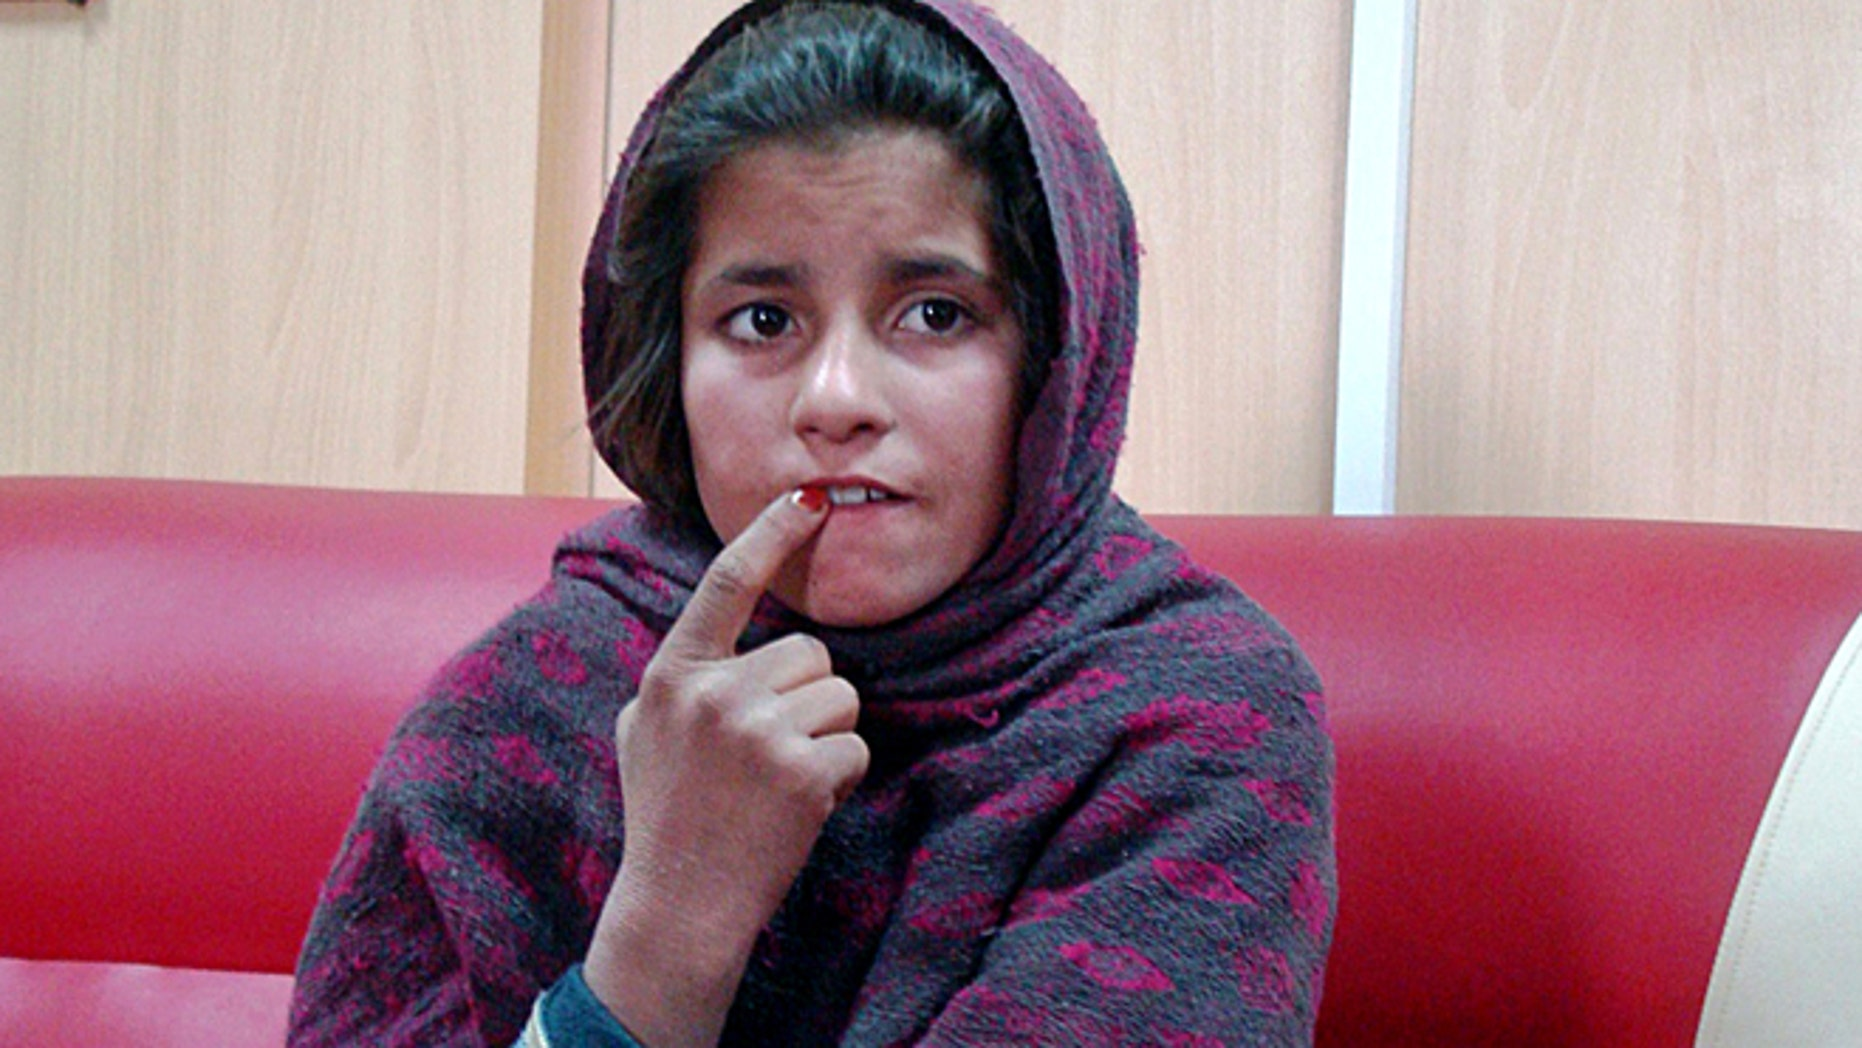 Jan. 6, 2014: In this photo, an Afghan girl named Spozhmai is held in a border police station in the Khan Neshin district in the southeastern part of Helmand province, Afghanistan.